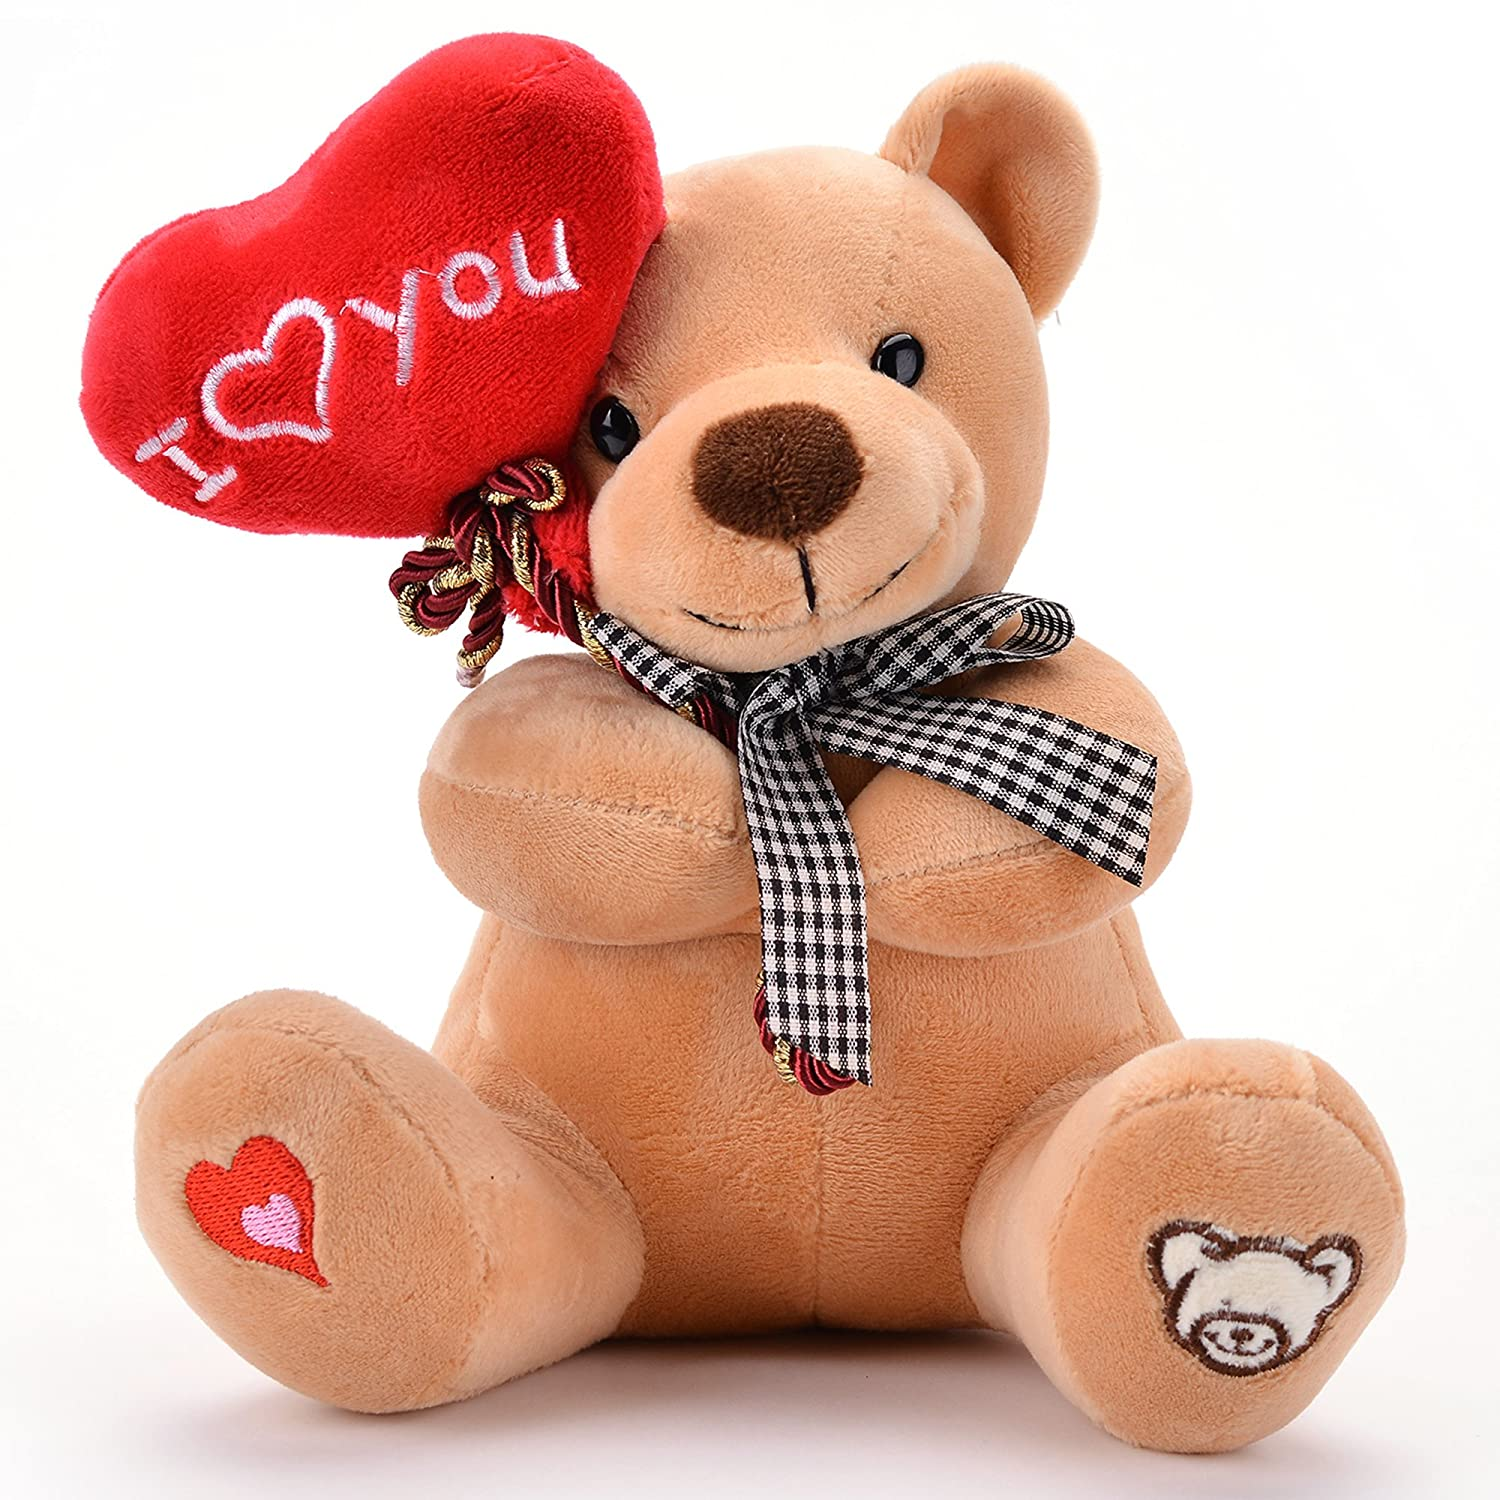 Amazon.com: Gloveleya Plush Smile Teddy Bear with Heart I Love You Lovers Gifts 7